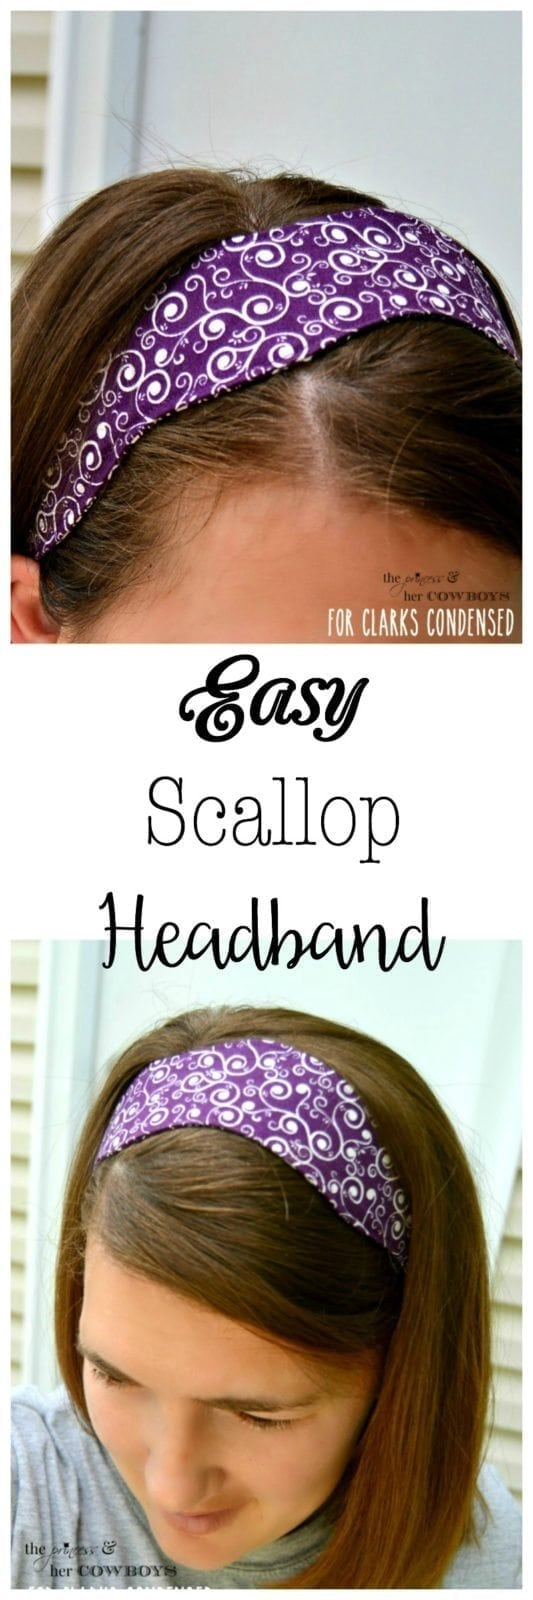 Easy Scallop Headband Tutorial